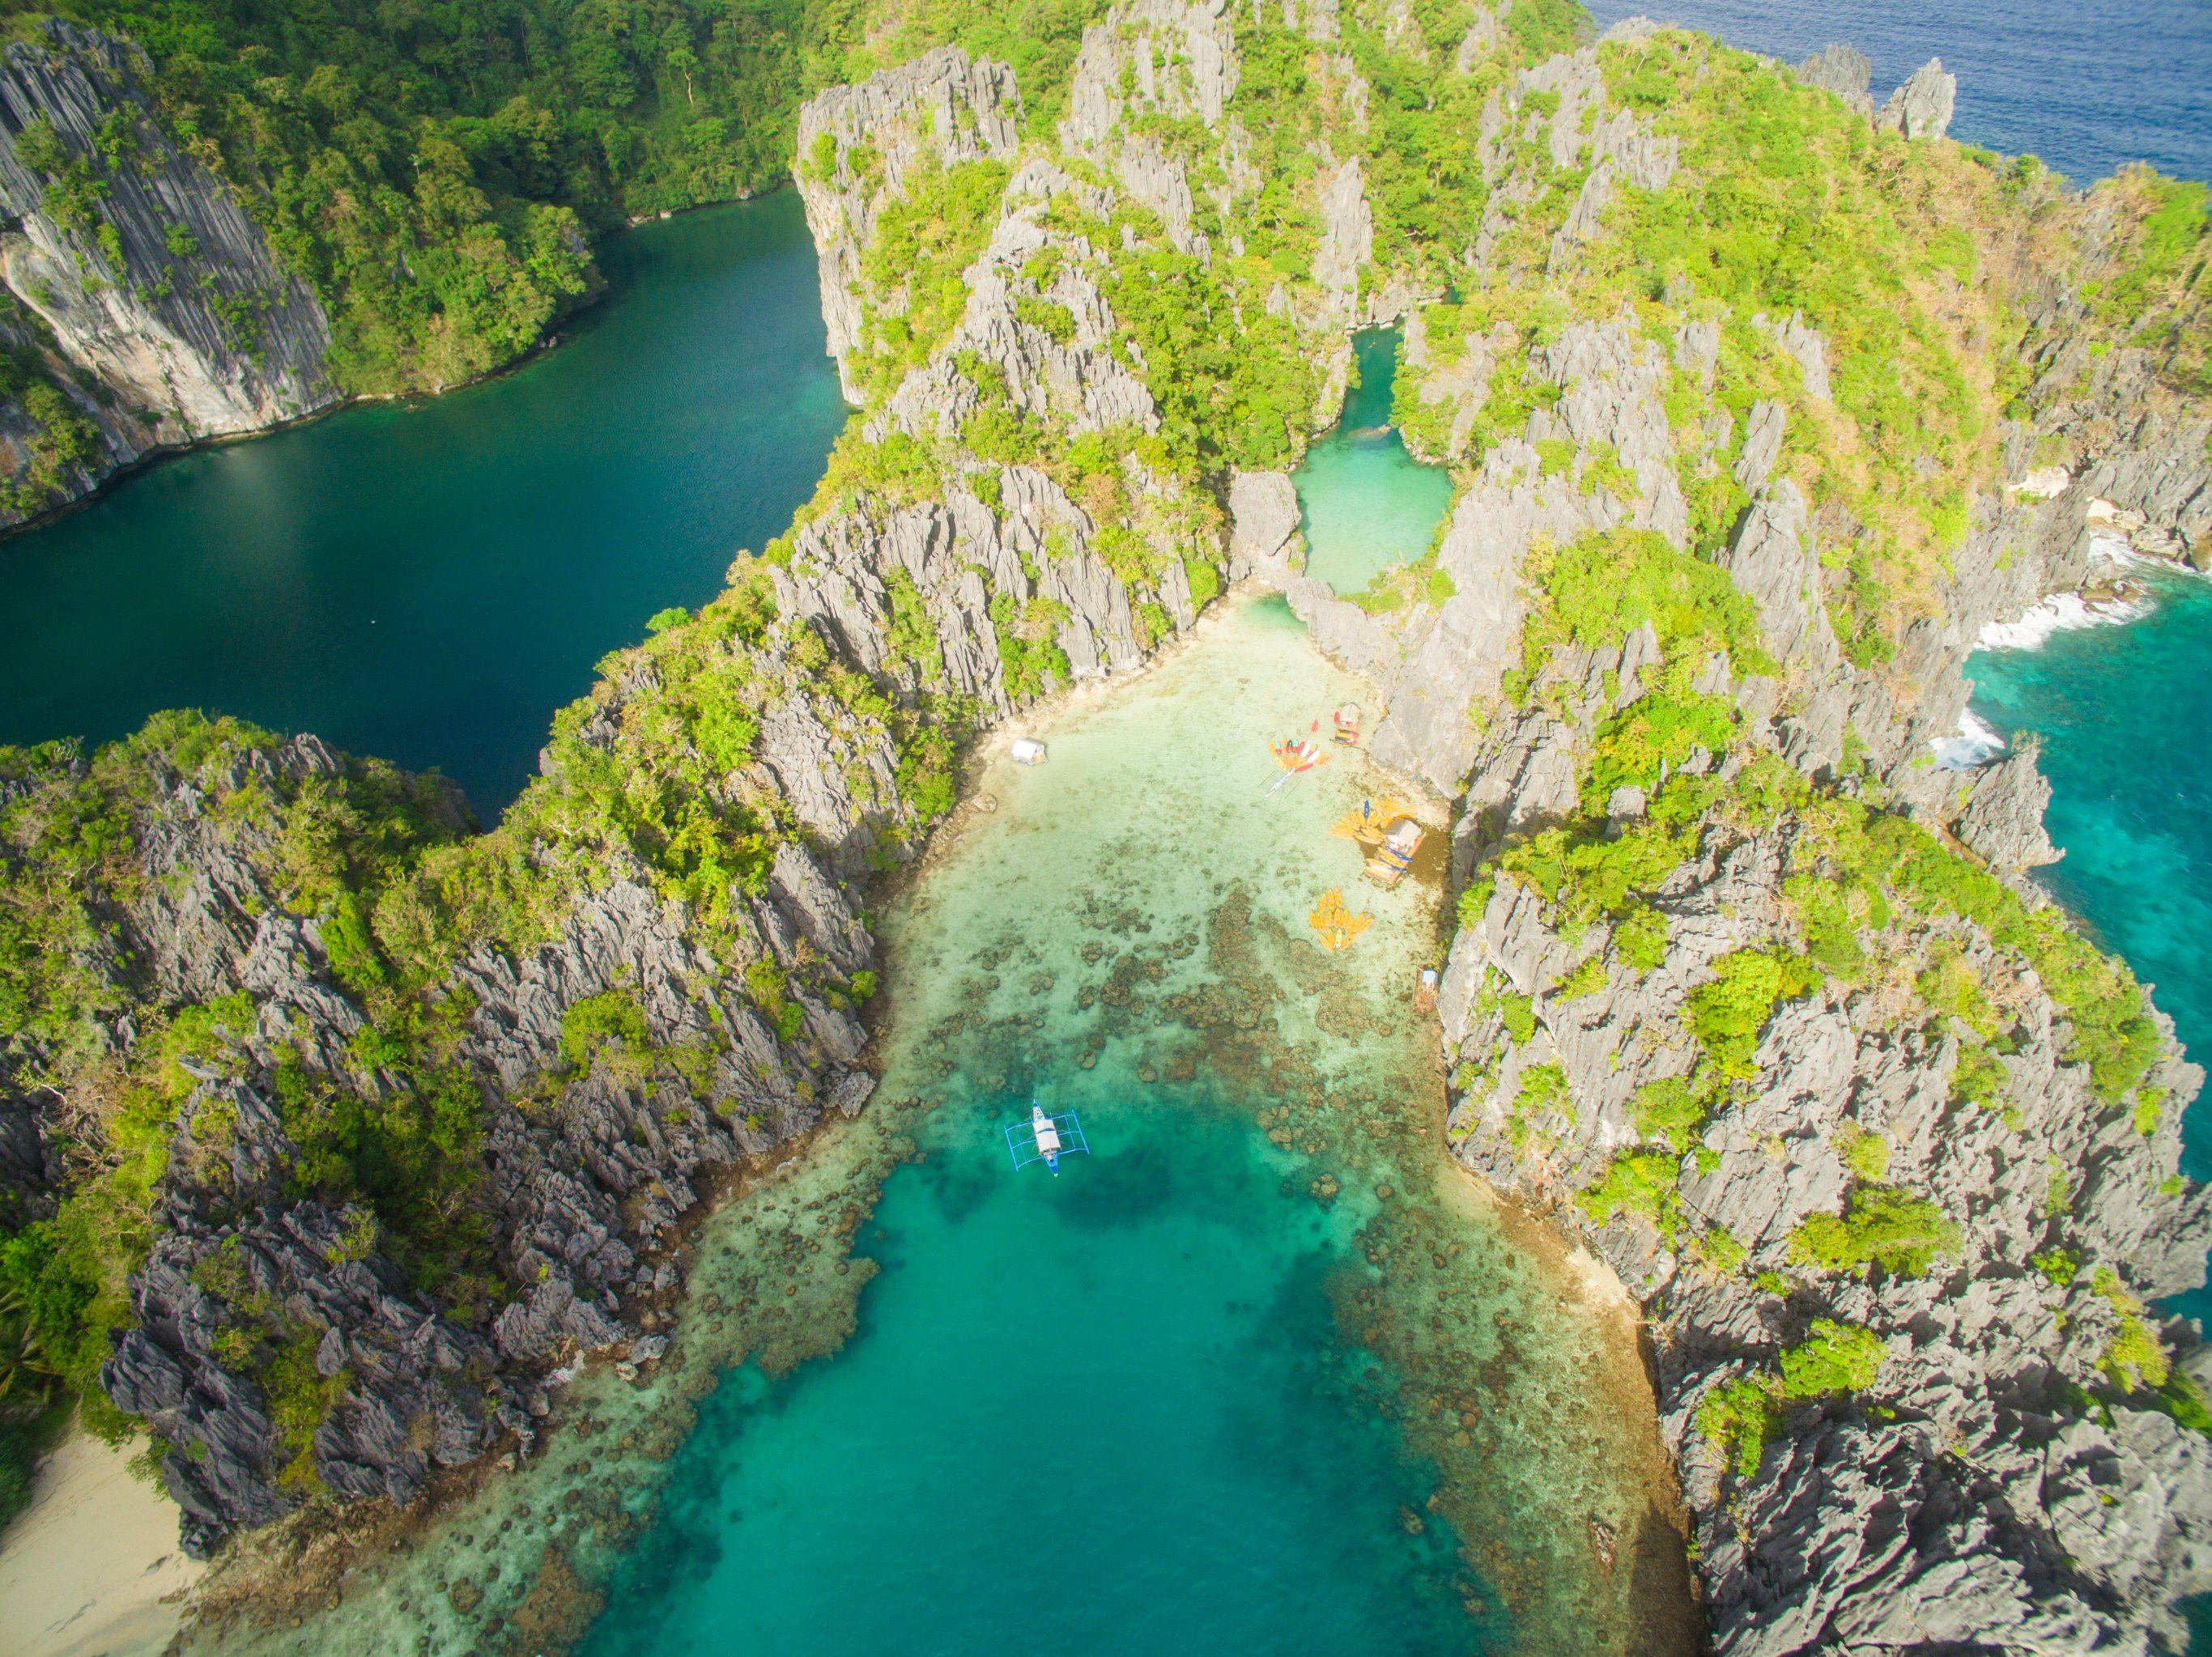 4-Day Relaxing El Nido Getaway - Philippines Itinerary